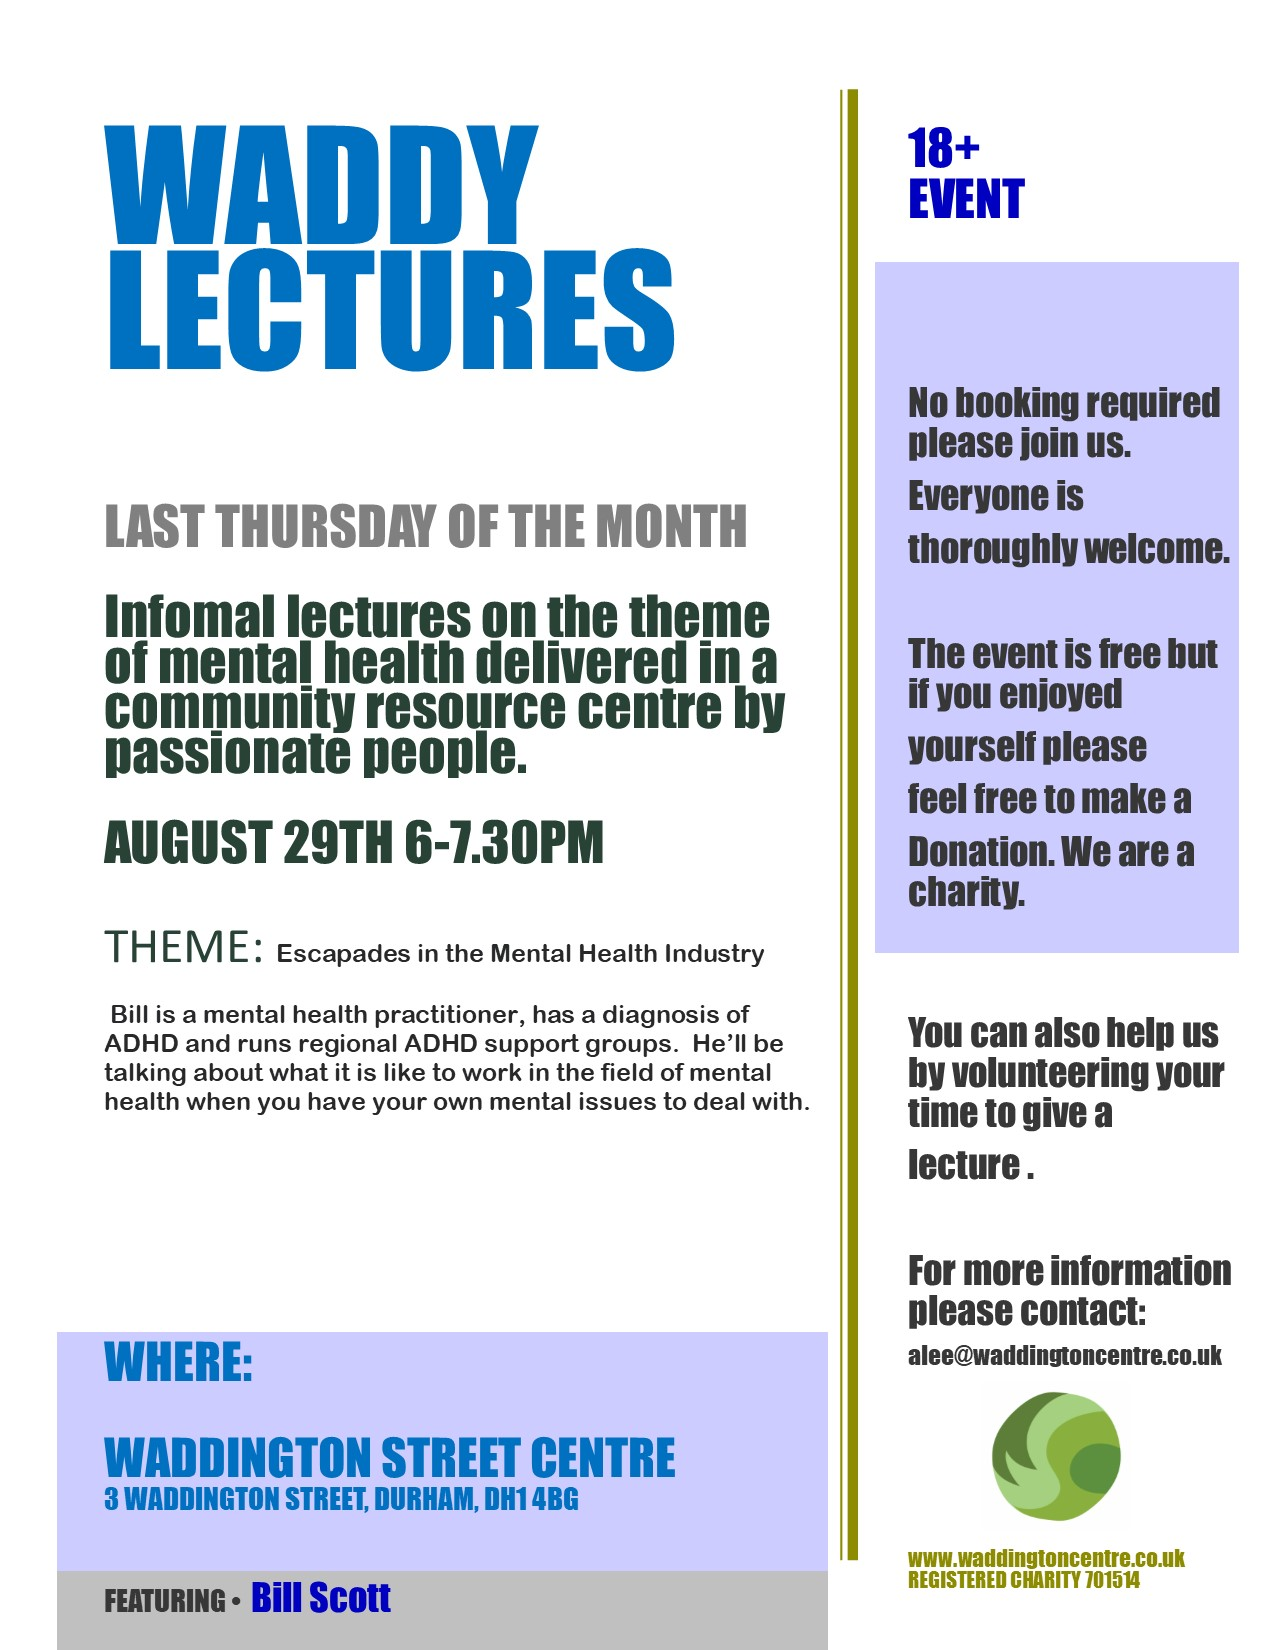 waddy lecture poster August.jpg